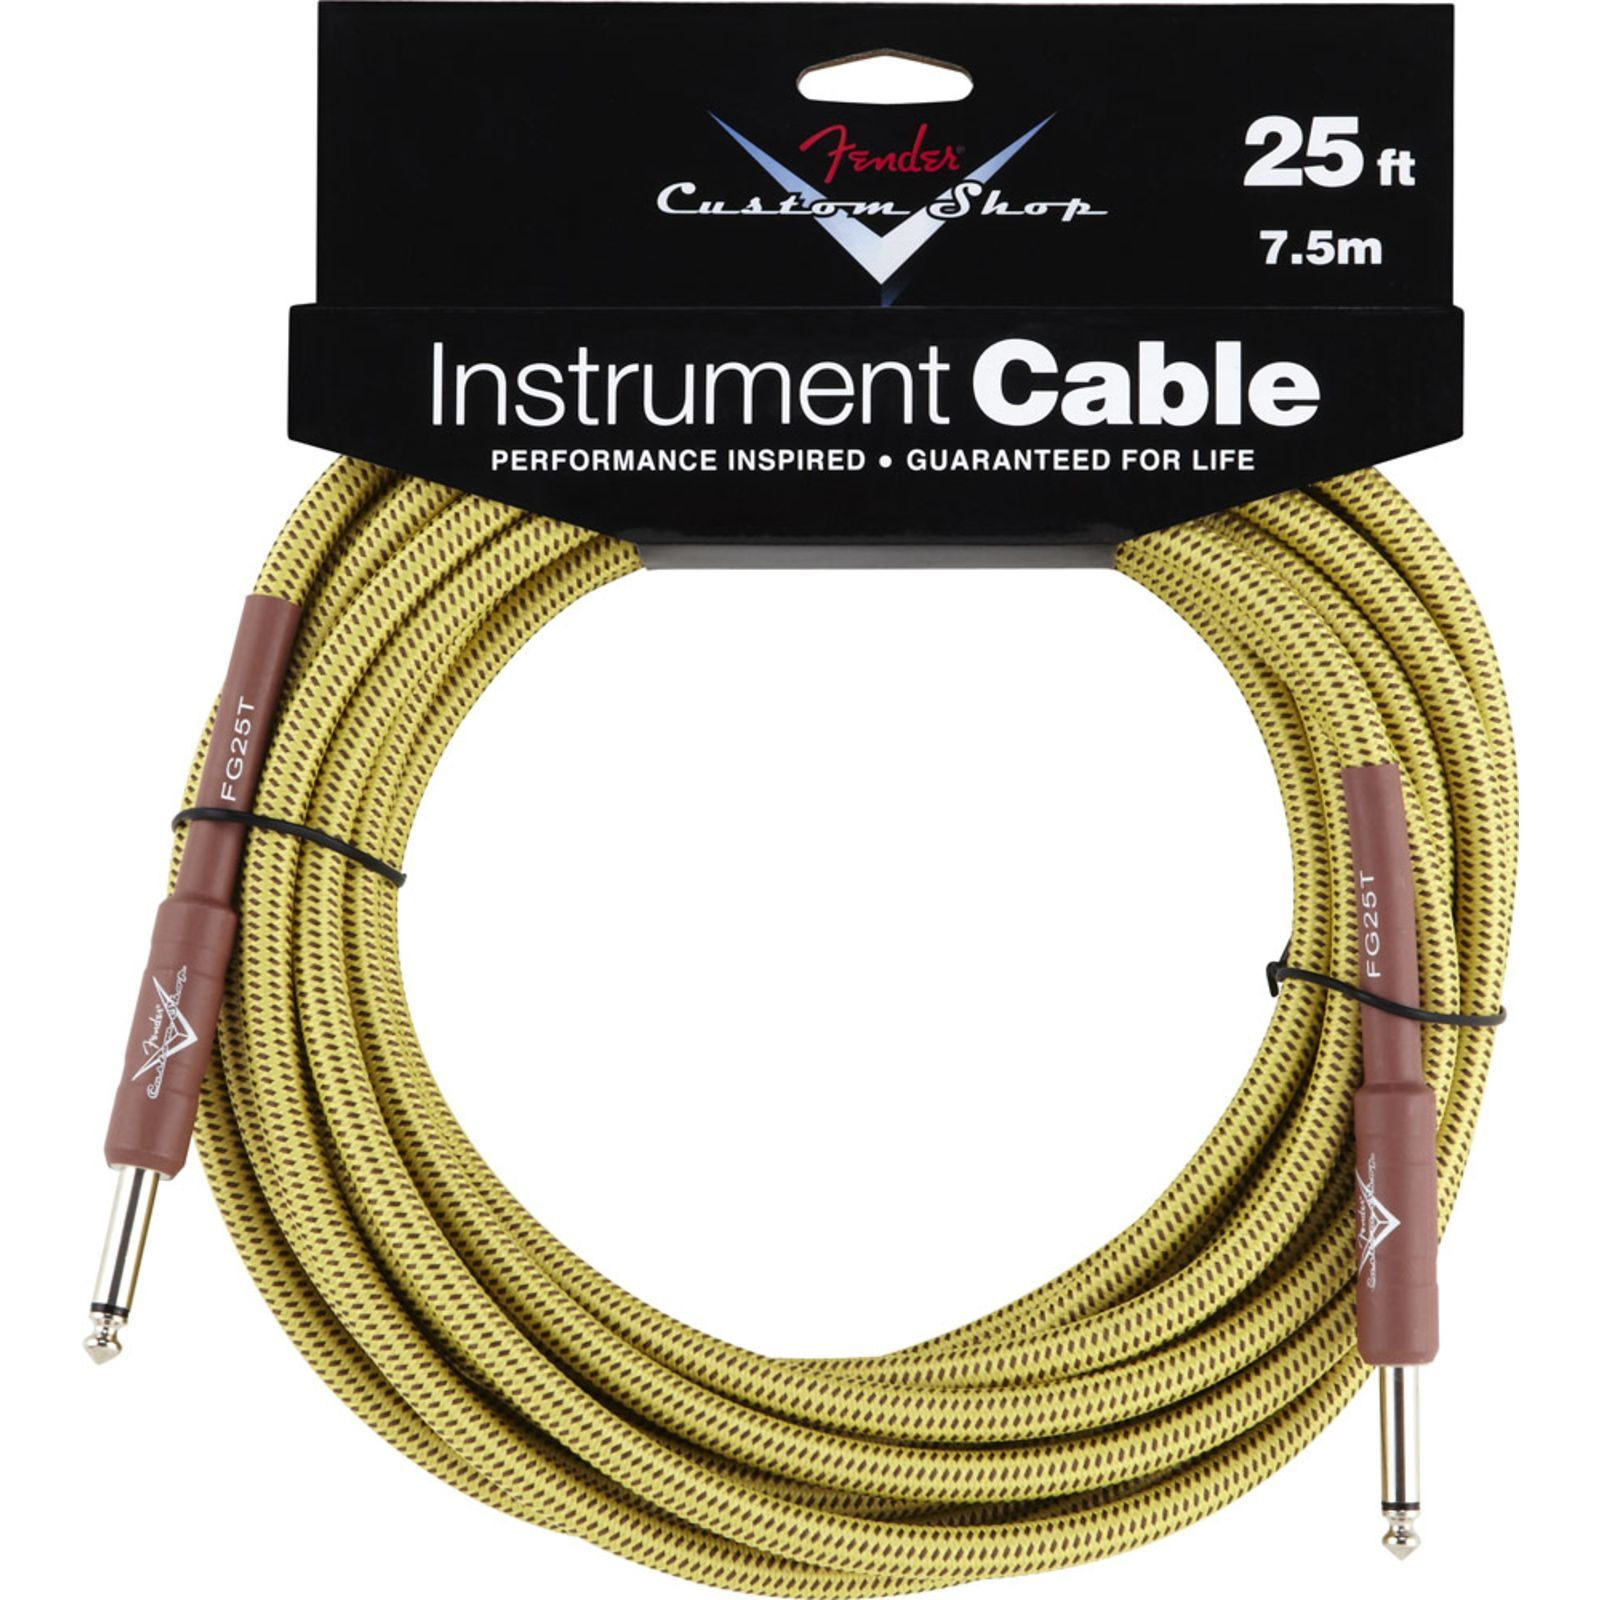 Fender Custom Shop Cable 7,5m TW Tweed, Kli/Kli Produktbild